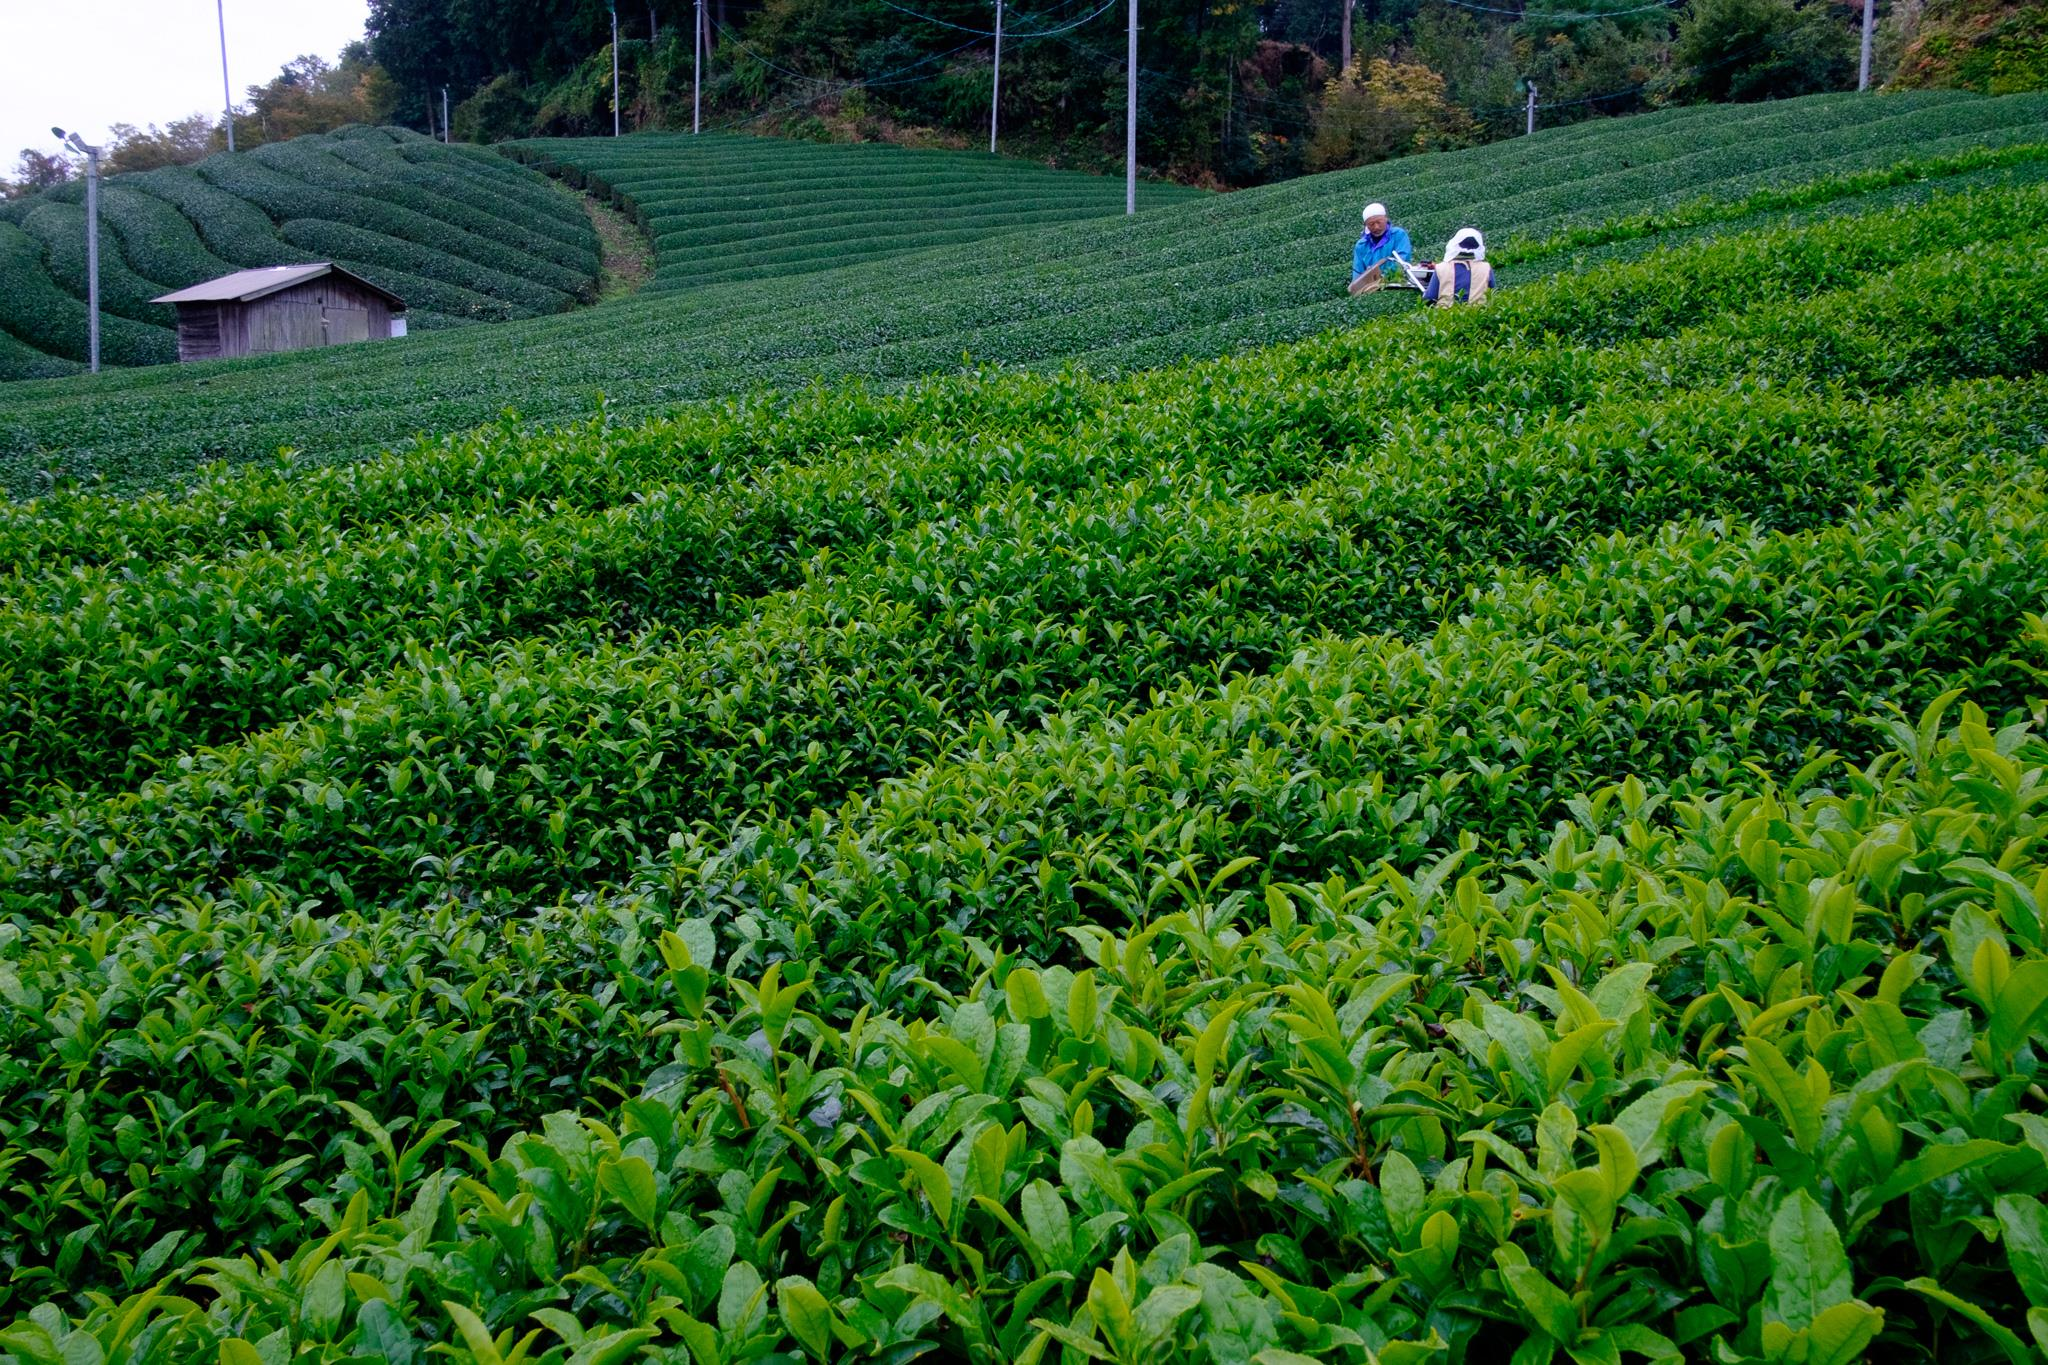 Farmers trimming new tencha leaves.